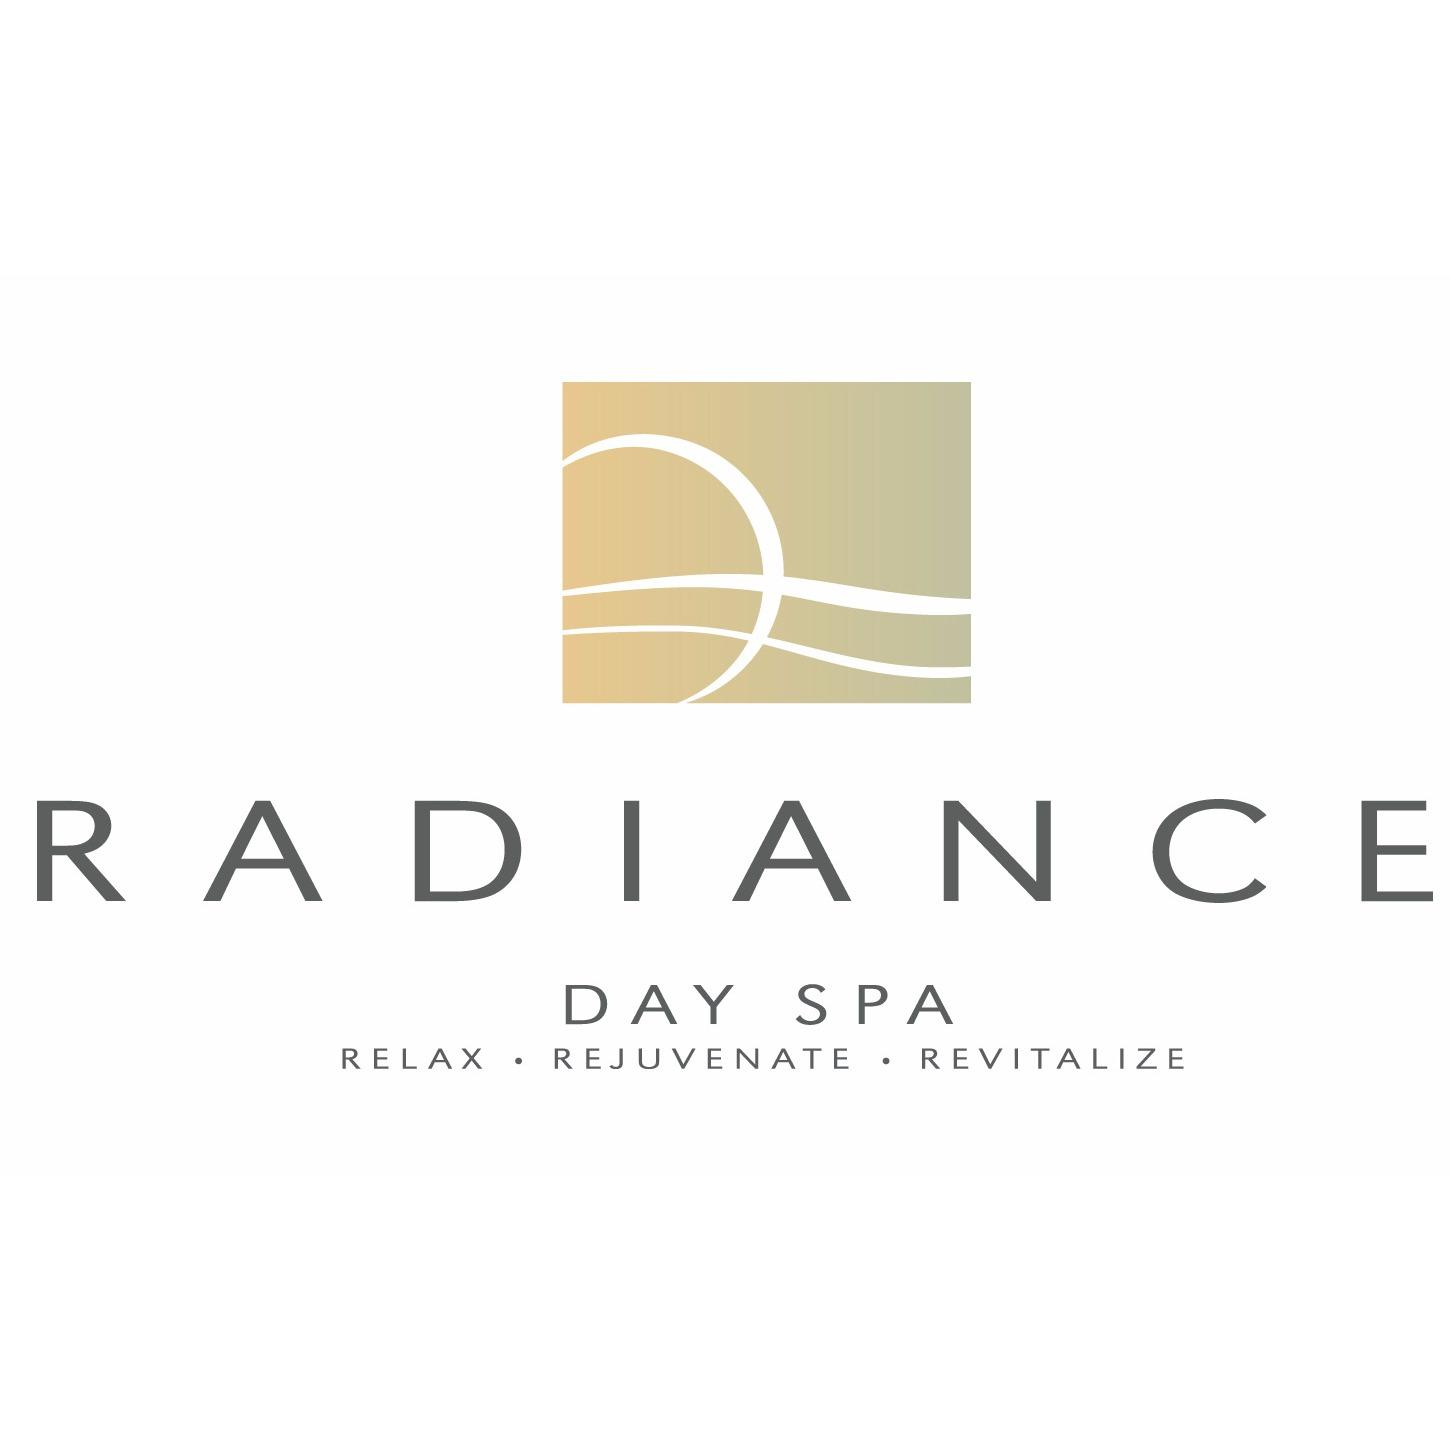 Radiance Day Spa